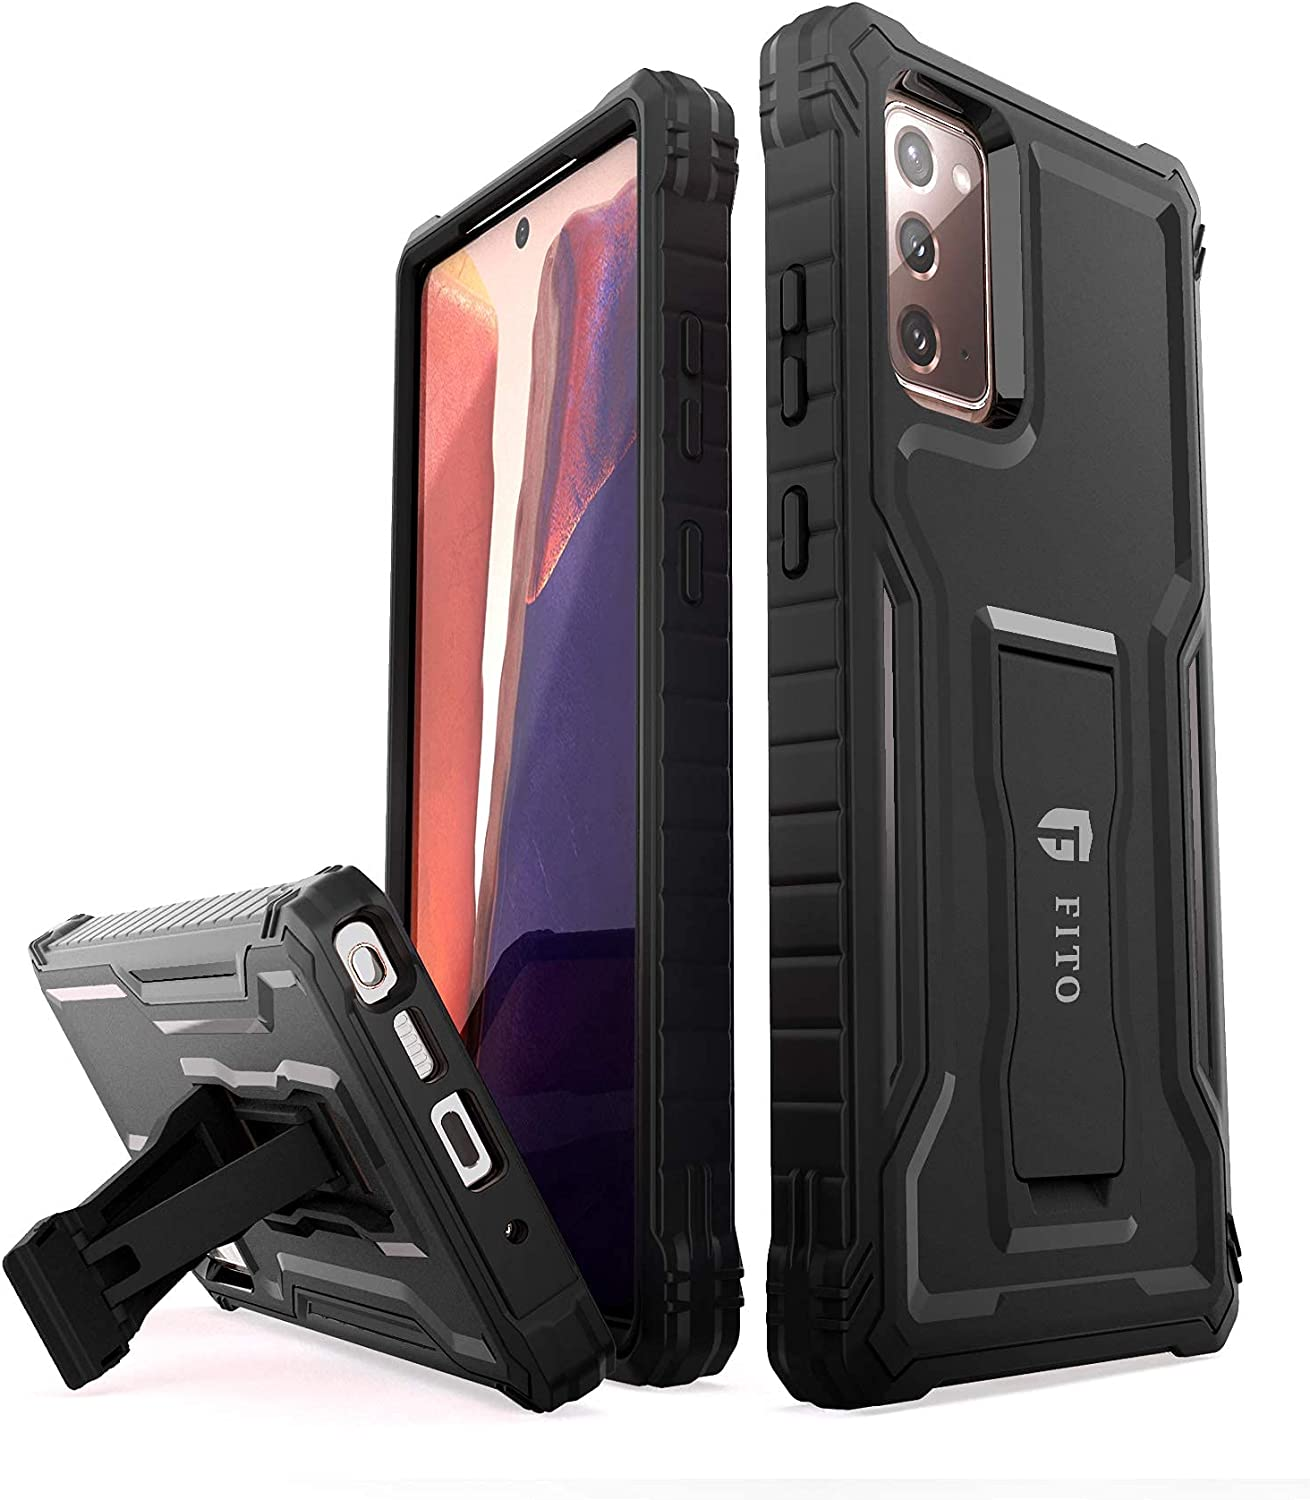 FITO Samsung Galaxy Note 20 Case, Dual Layer Shockproof Heavy Duty Case for Samsung Note 20 5G Phone Without Screen Protector, Built-in Kickstand (Black, 6.7 inch)